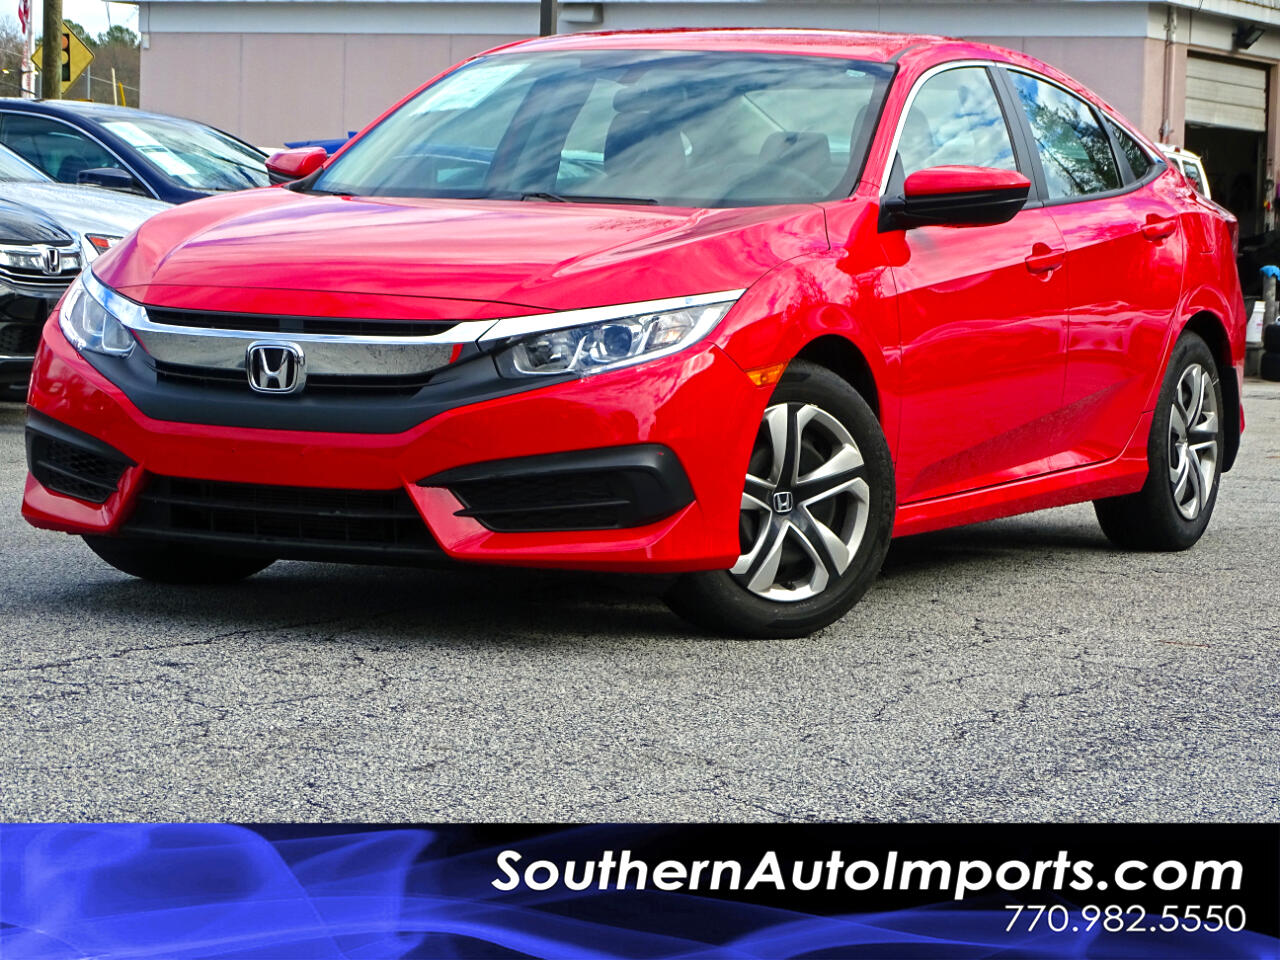 Honda Civic Sedan LX CVT 2018